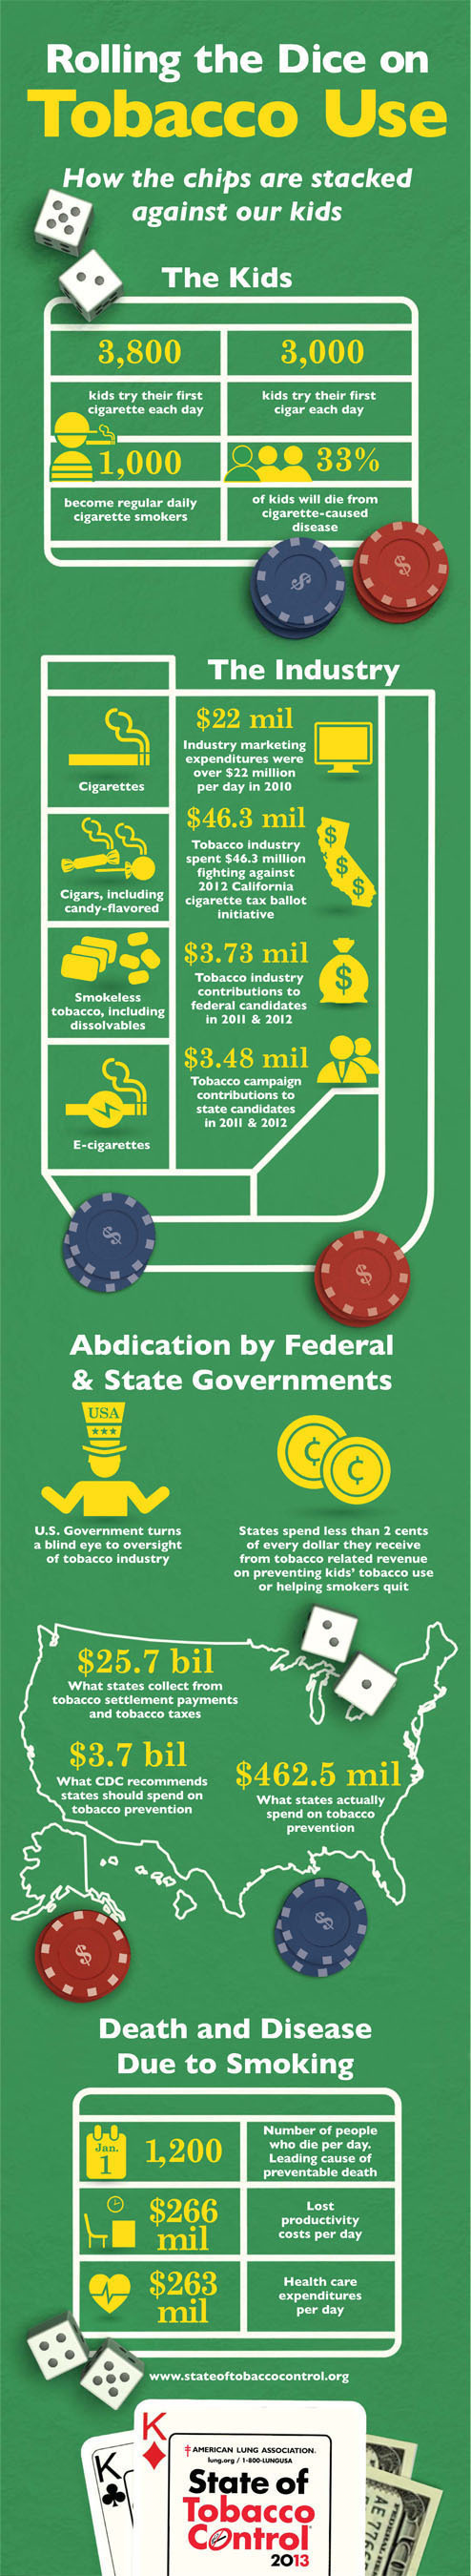 Tobacco Industry Continues to Spend Billions While Public Health Shortchanged